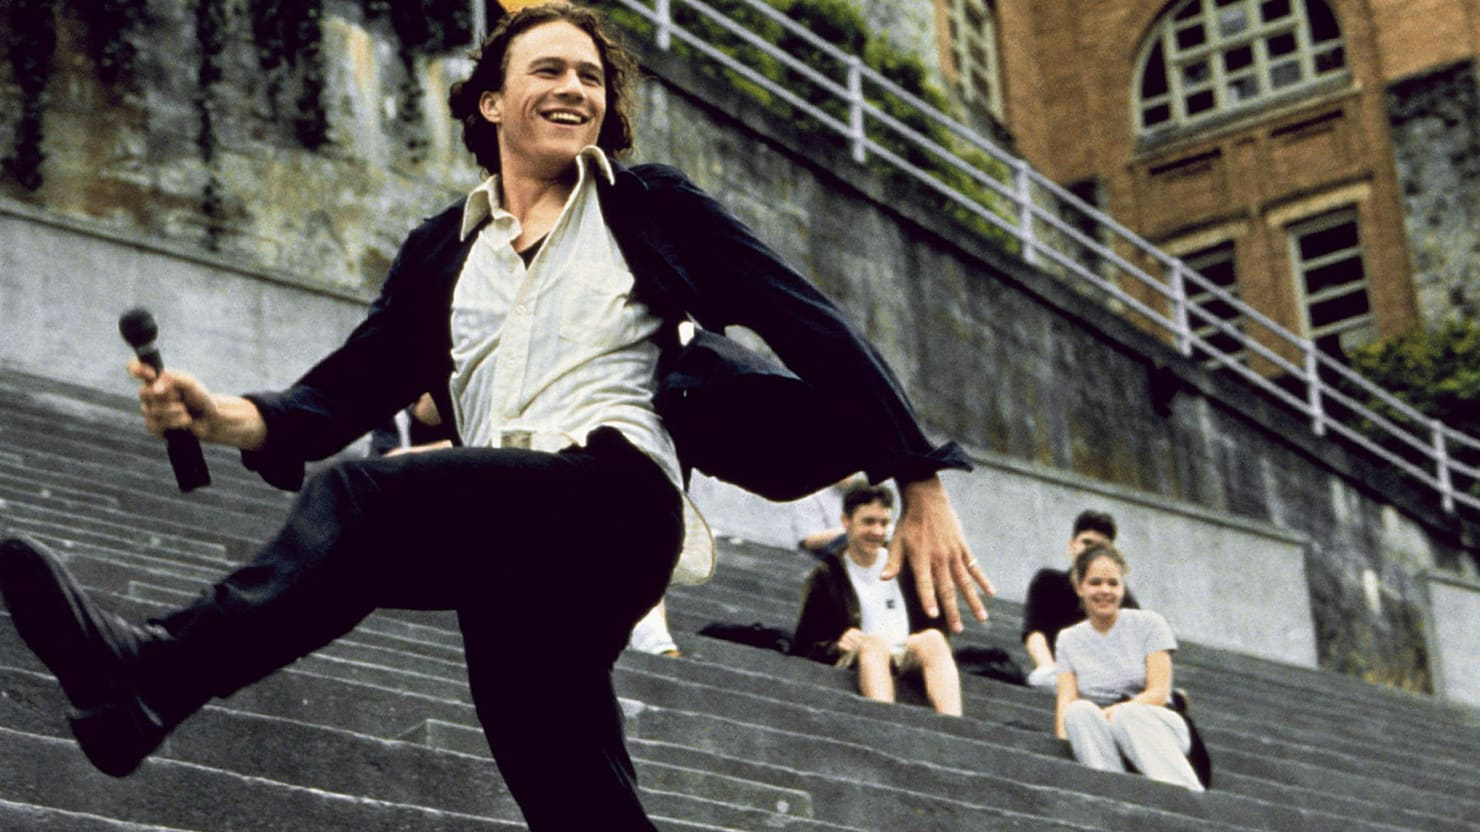 10 Things I Hate About You Patrick: Remembering '10 Things I Hate About You': The Movie That